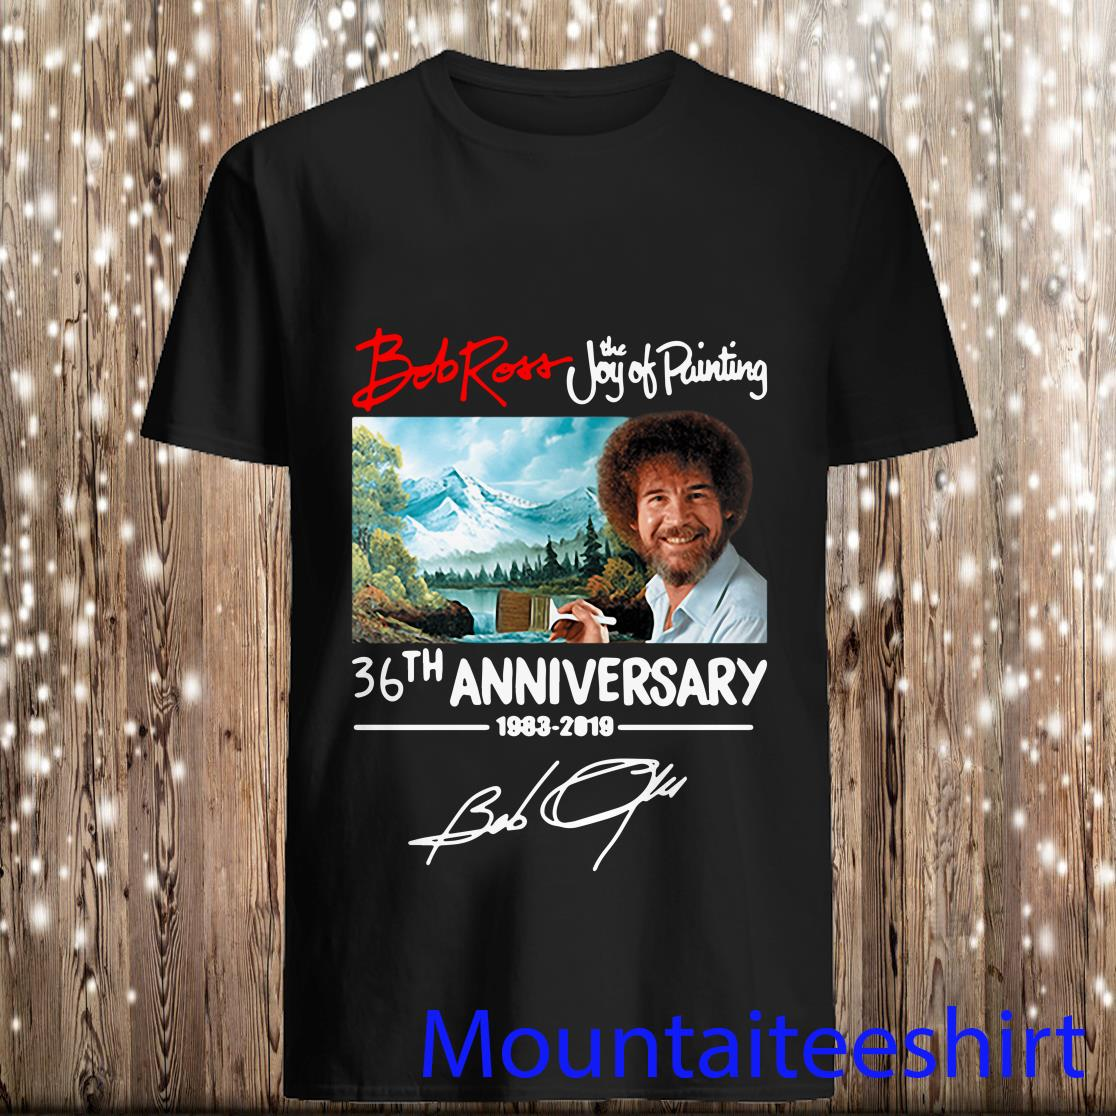 Bob Ross The Joy Of Painting 36th Anniversary 1983 2019 Shirt